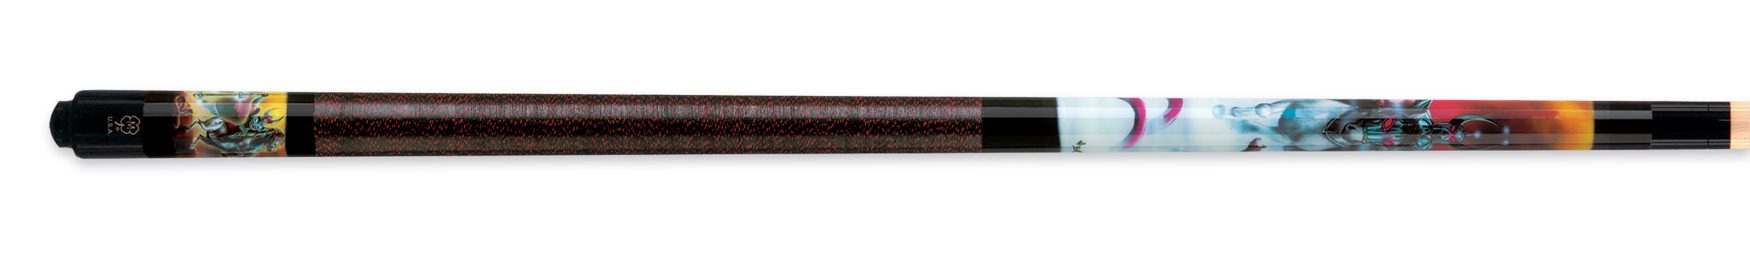 Custom pool cue options design your own billiards stick for Pool cues design your own